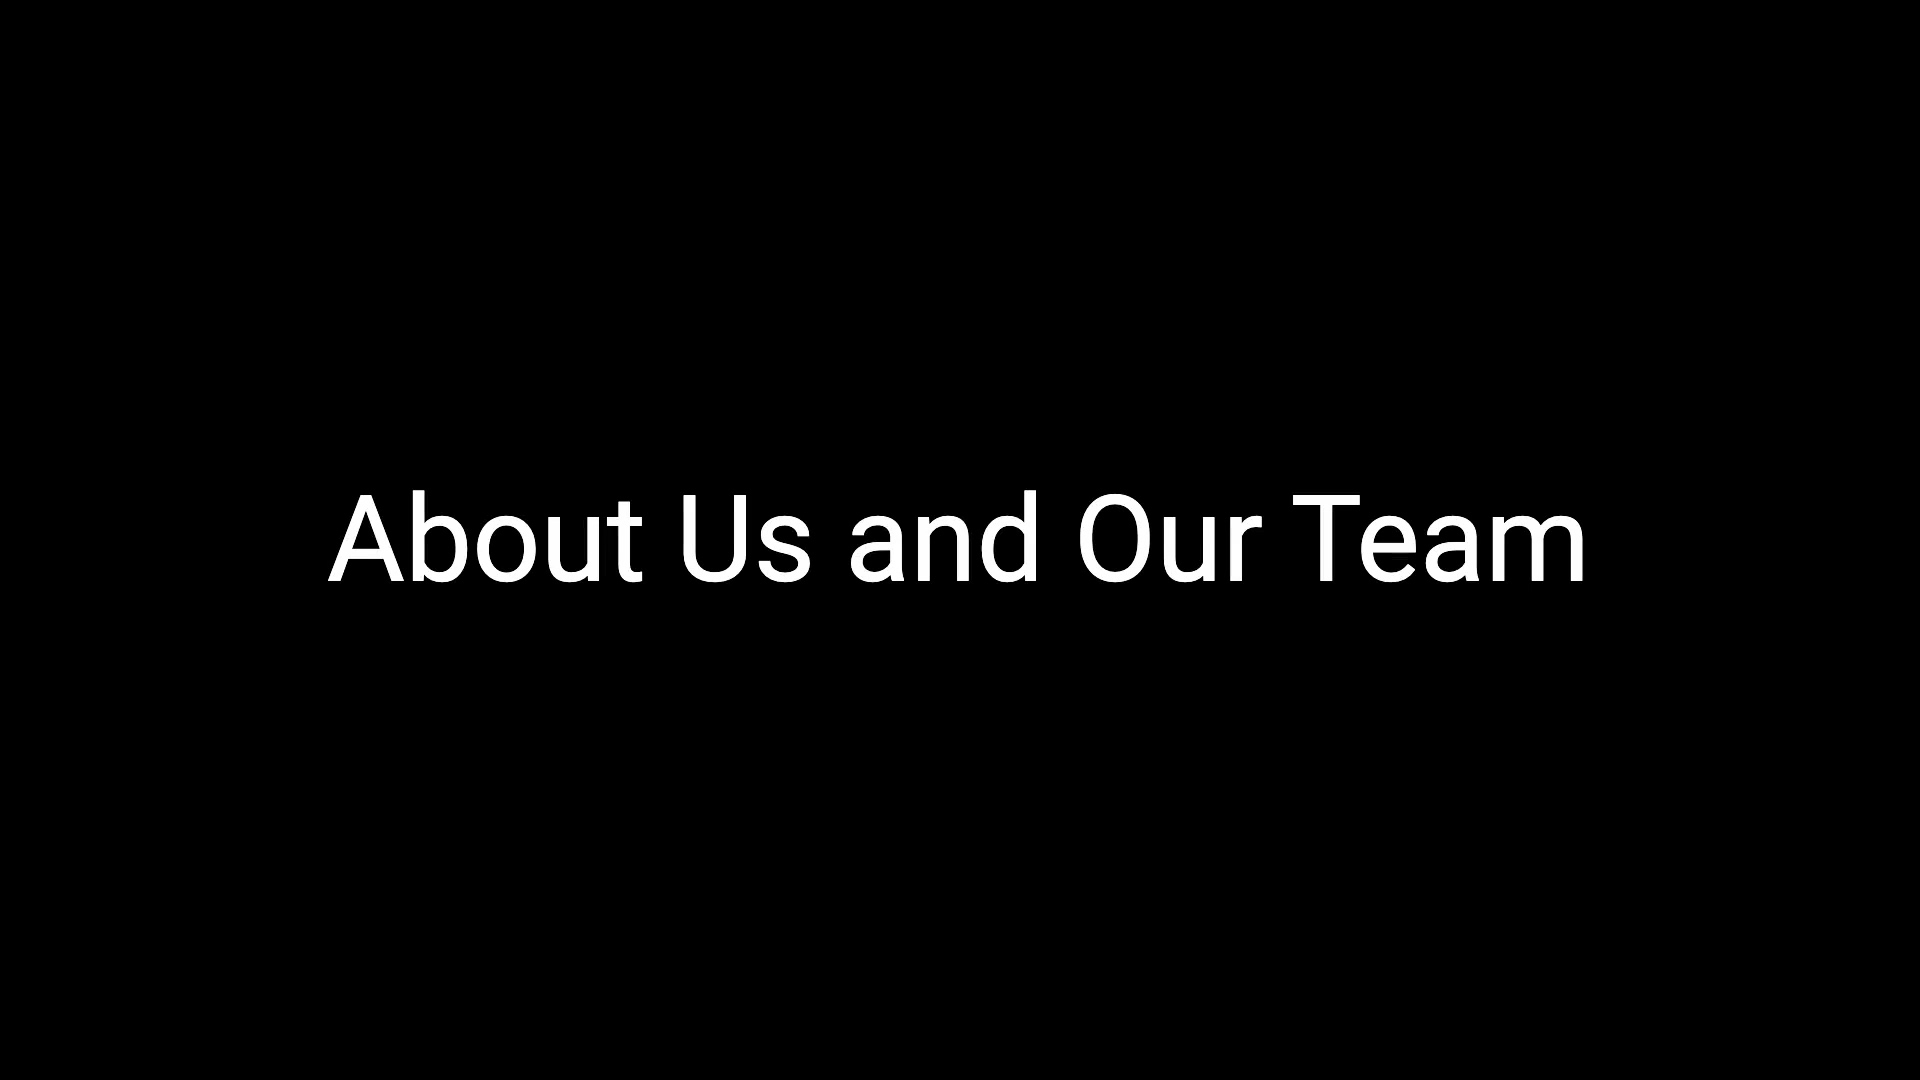 About us and our team